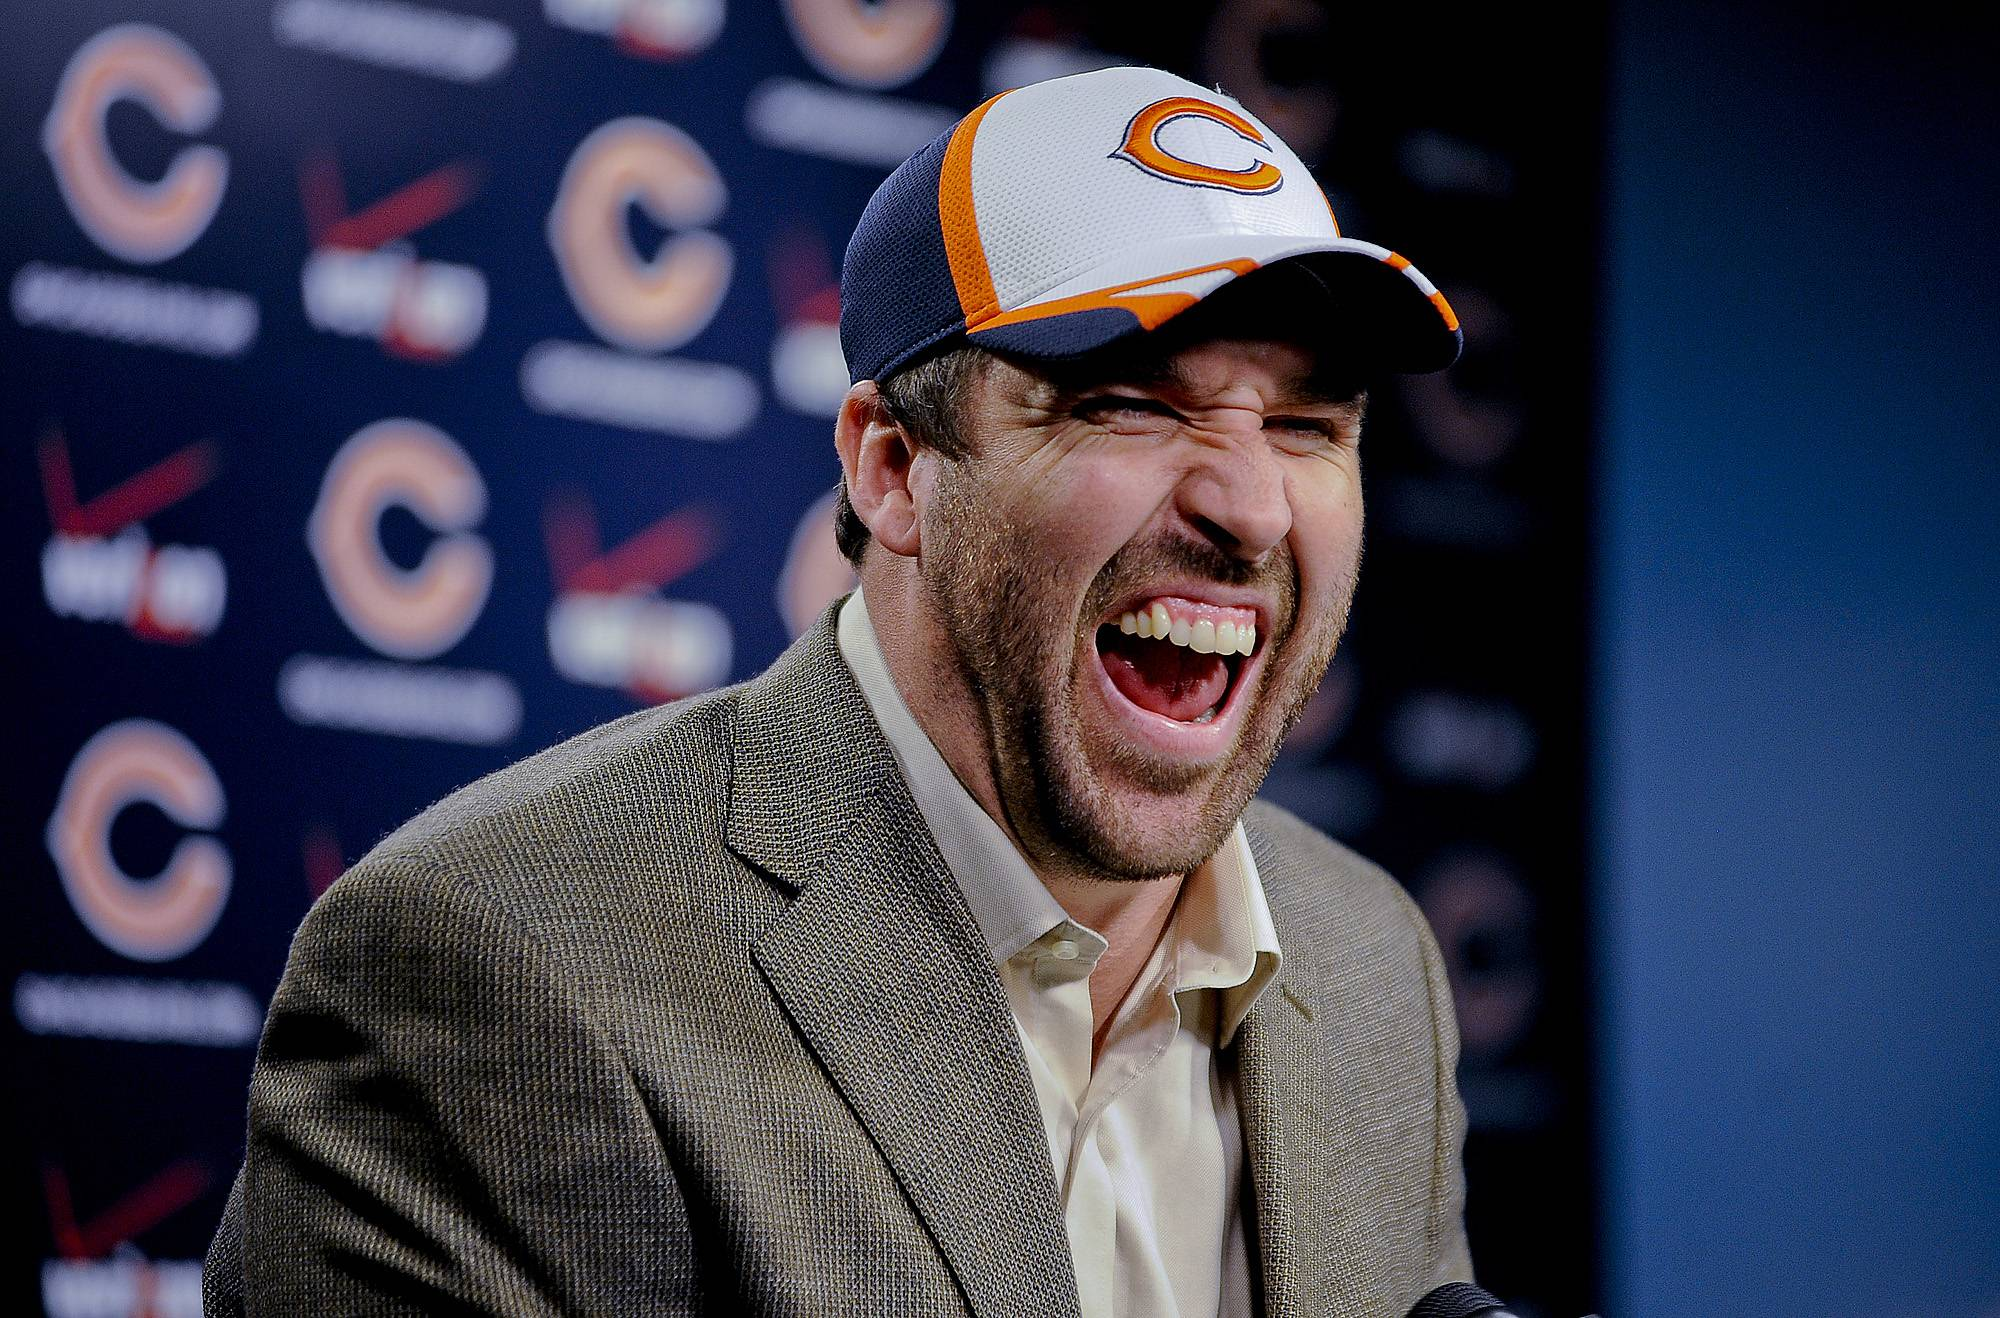 Defensive end Jared Allen laughs during a news conference to introduce him as a Bear on Monday in Lake Forest. Allen leads the league with 128½ sacks since entering the NFL as a fourth-round draft pick in 2004.